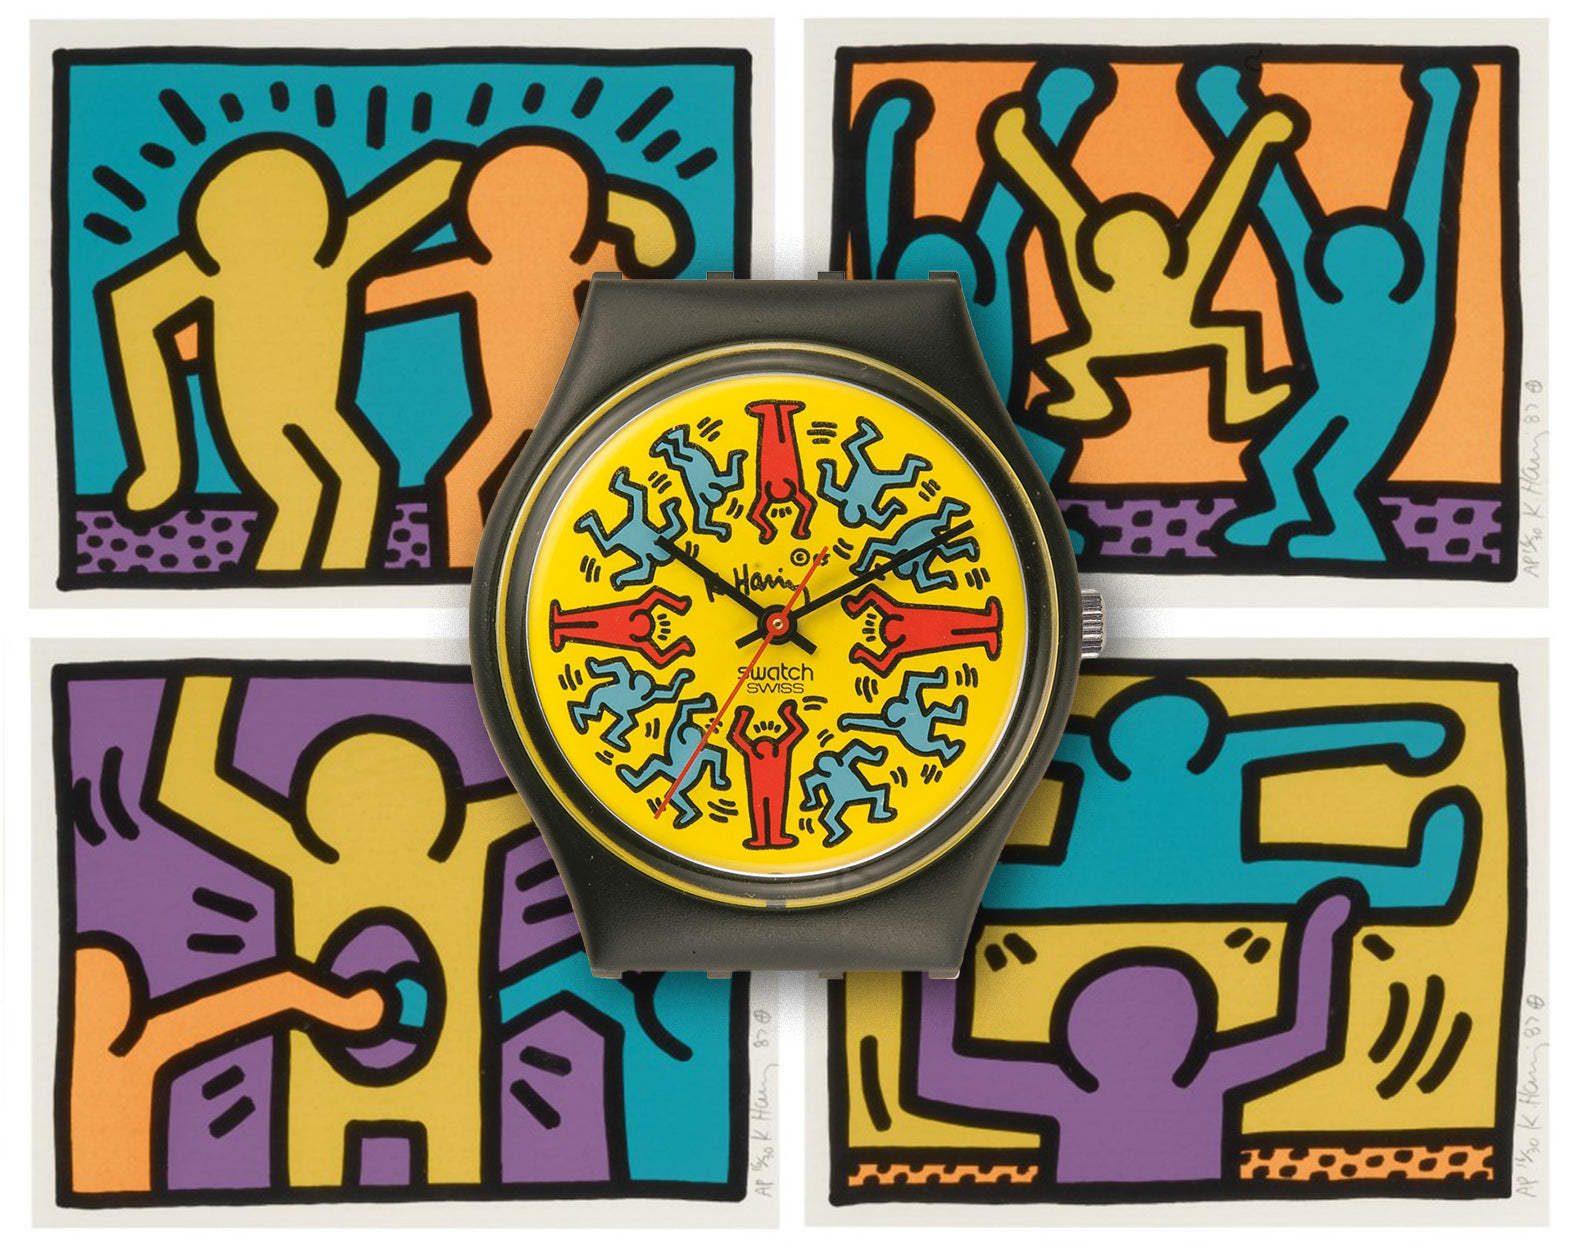 Keith Haring Swatch collaboration in front of four Keith Haring artworks for A Collected Man London